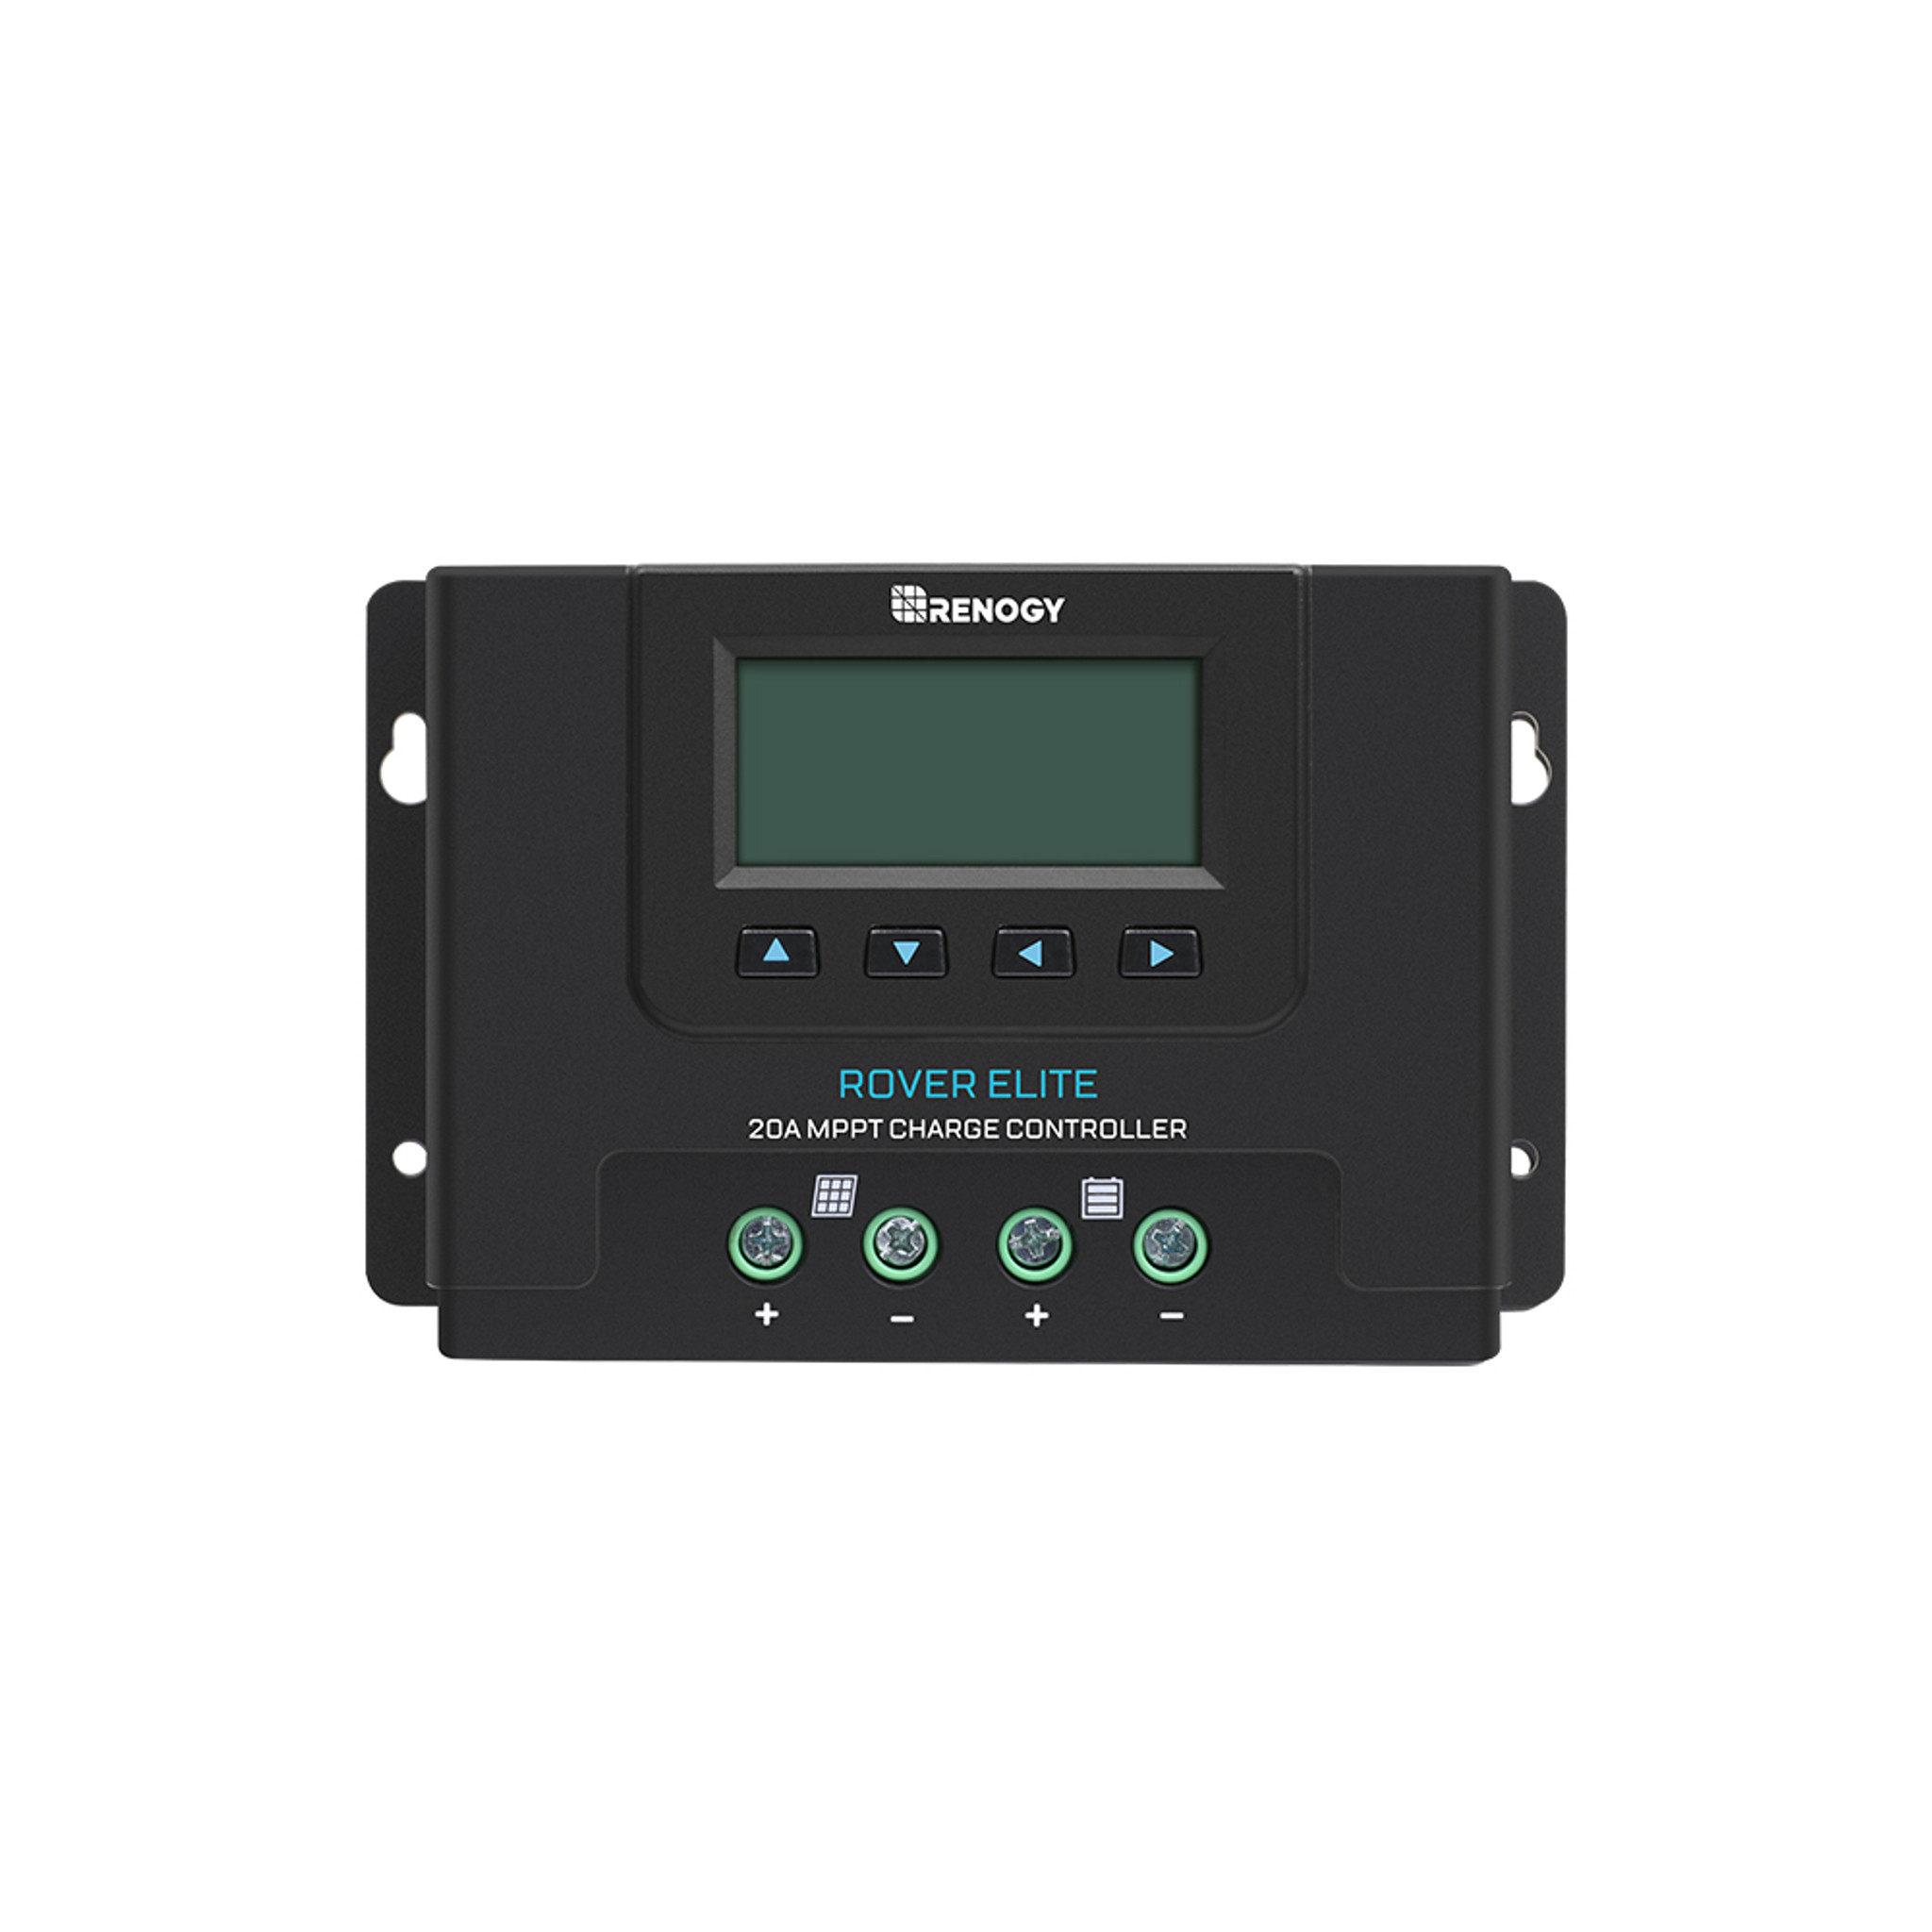 Rover Li 20 Amp MPPT Solar Charge Controller